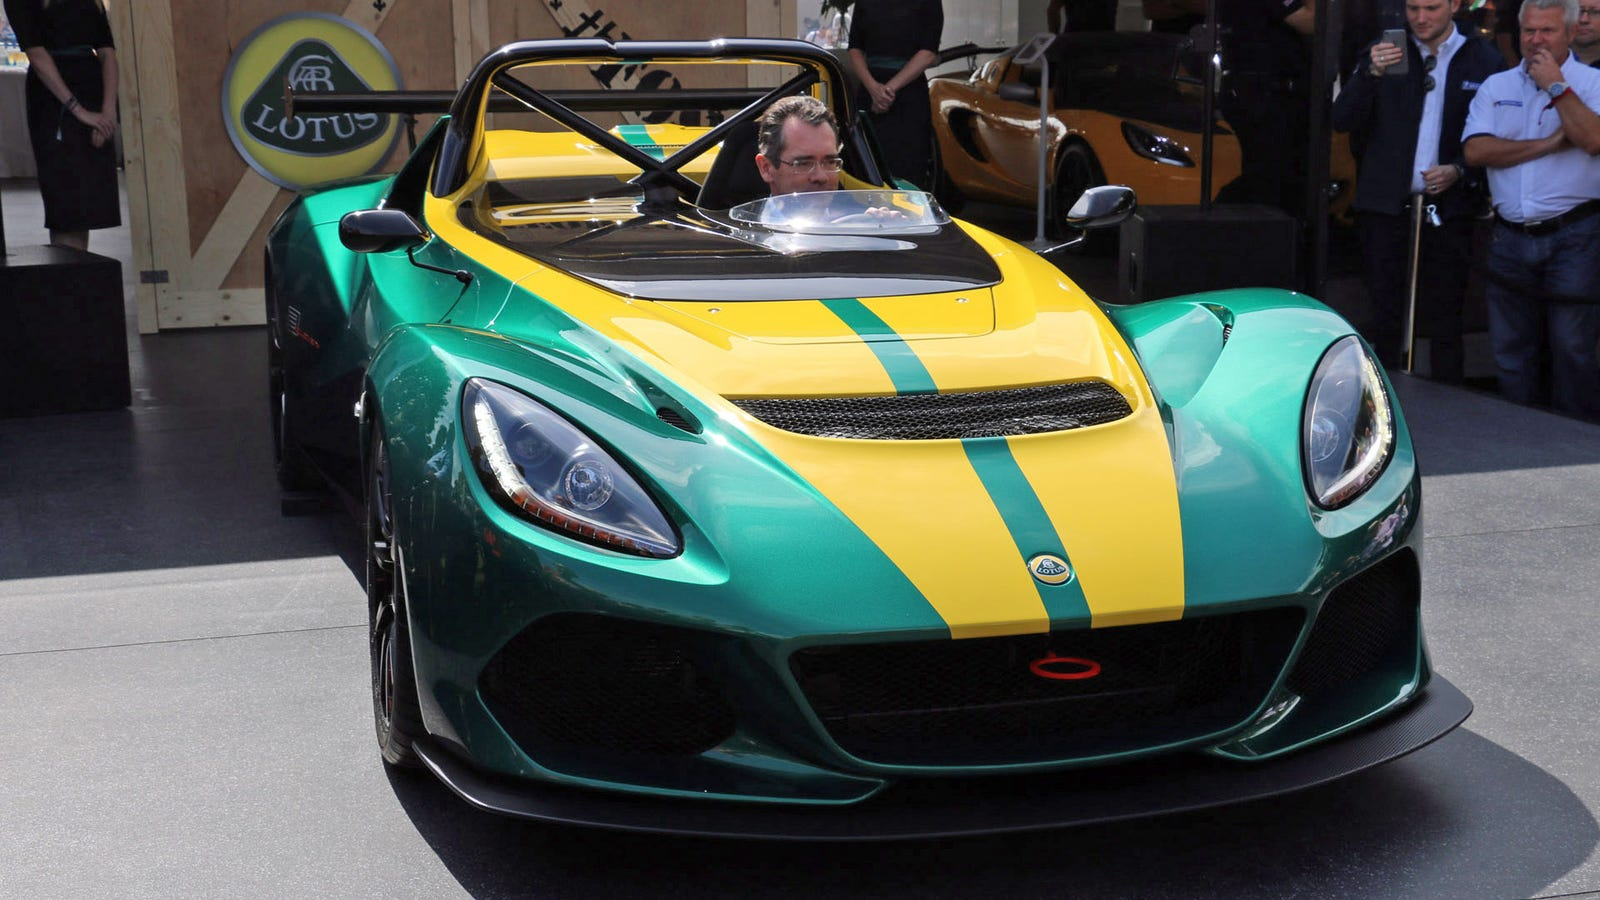 Lotus 3 Eleven This Is The Fastest Baddest Most